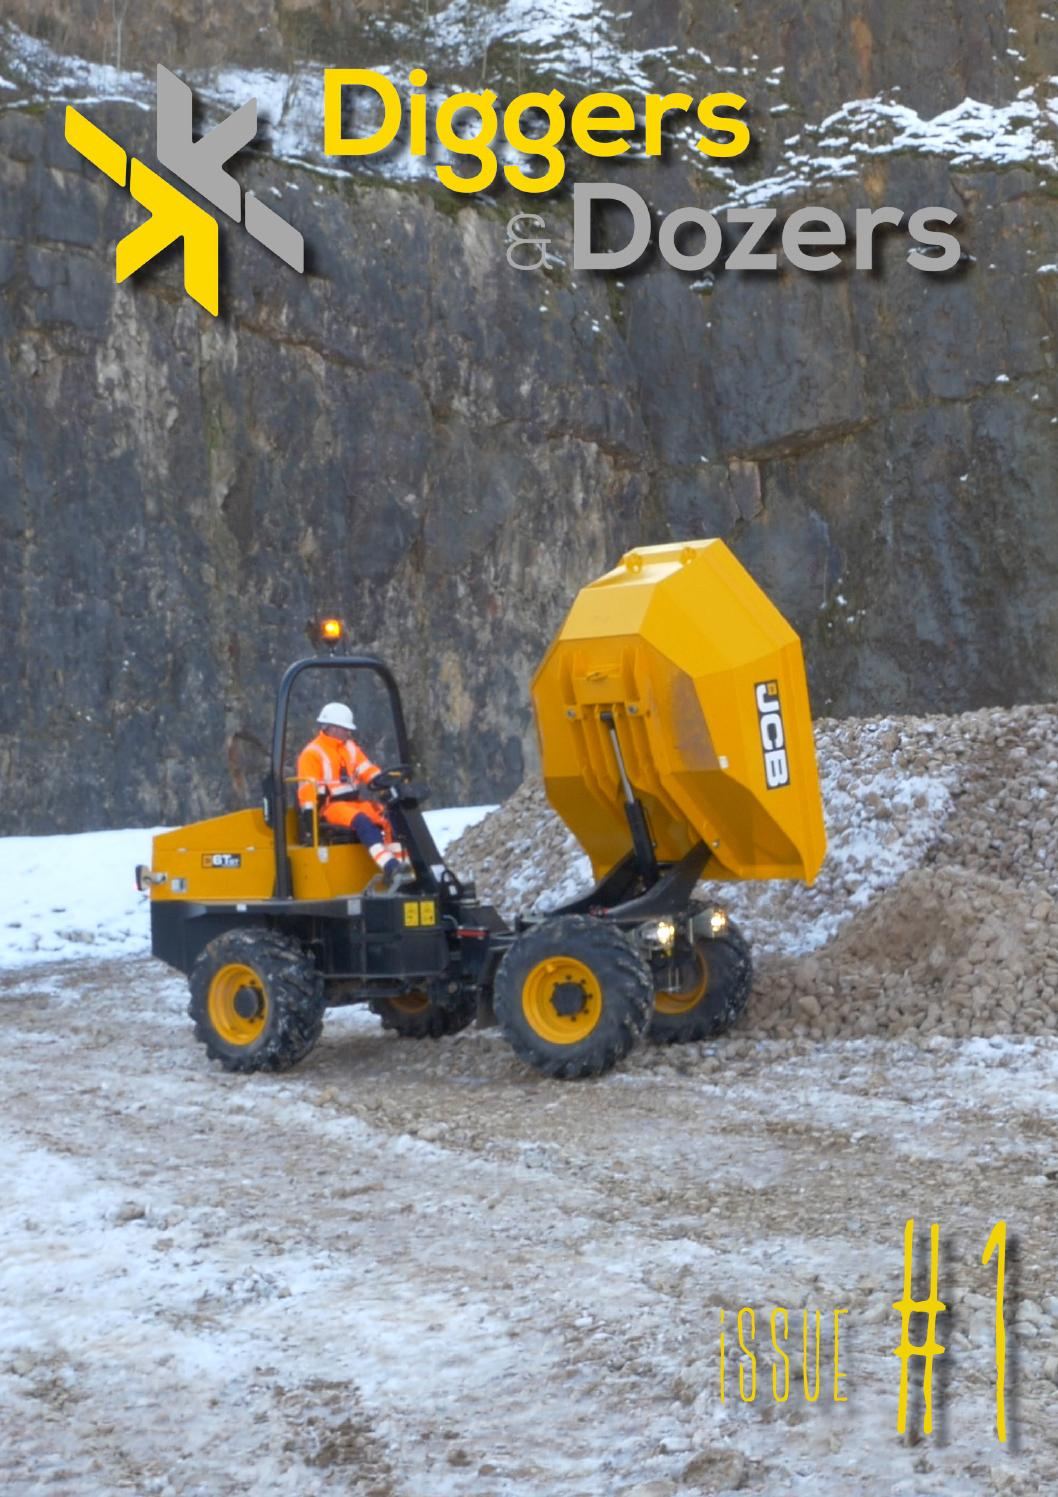 Issuu Diggers And Dozers Issue 1 By Diggers And Dozers